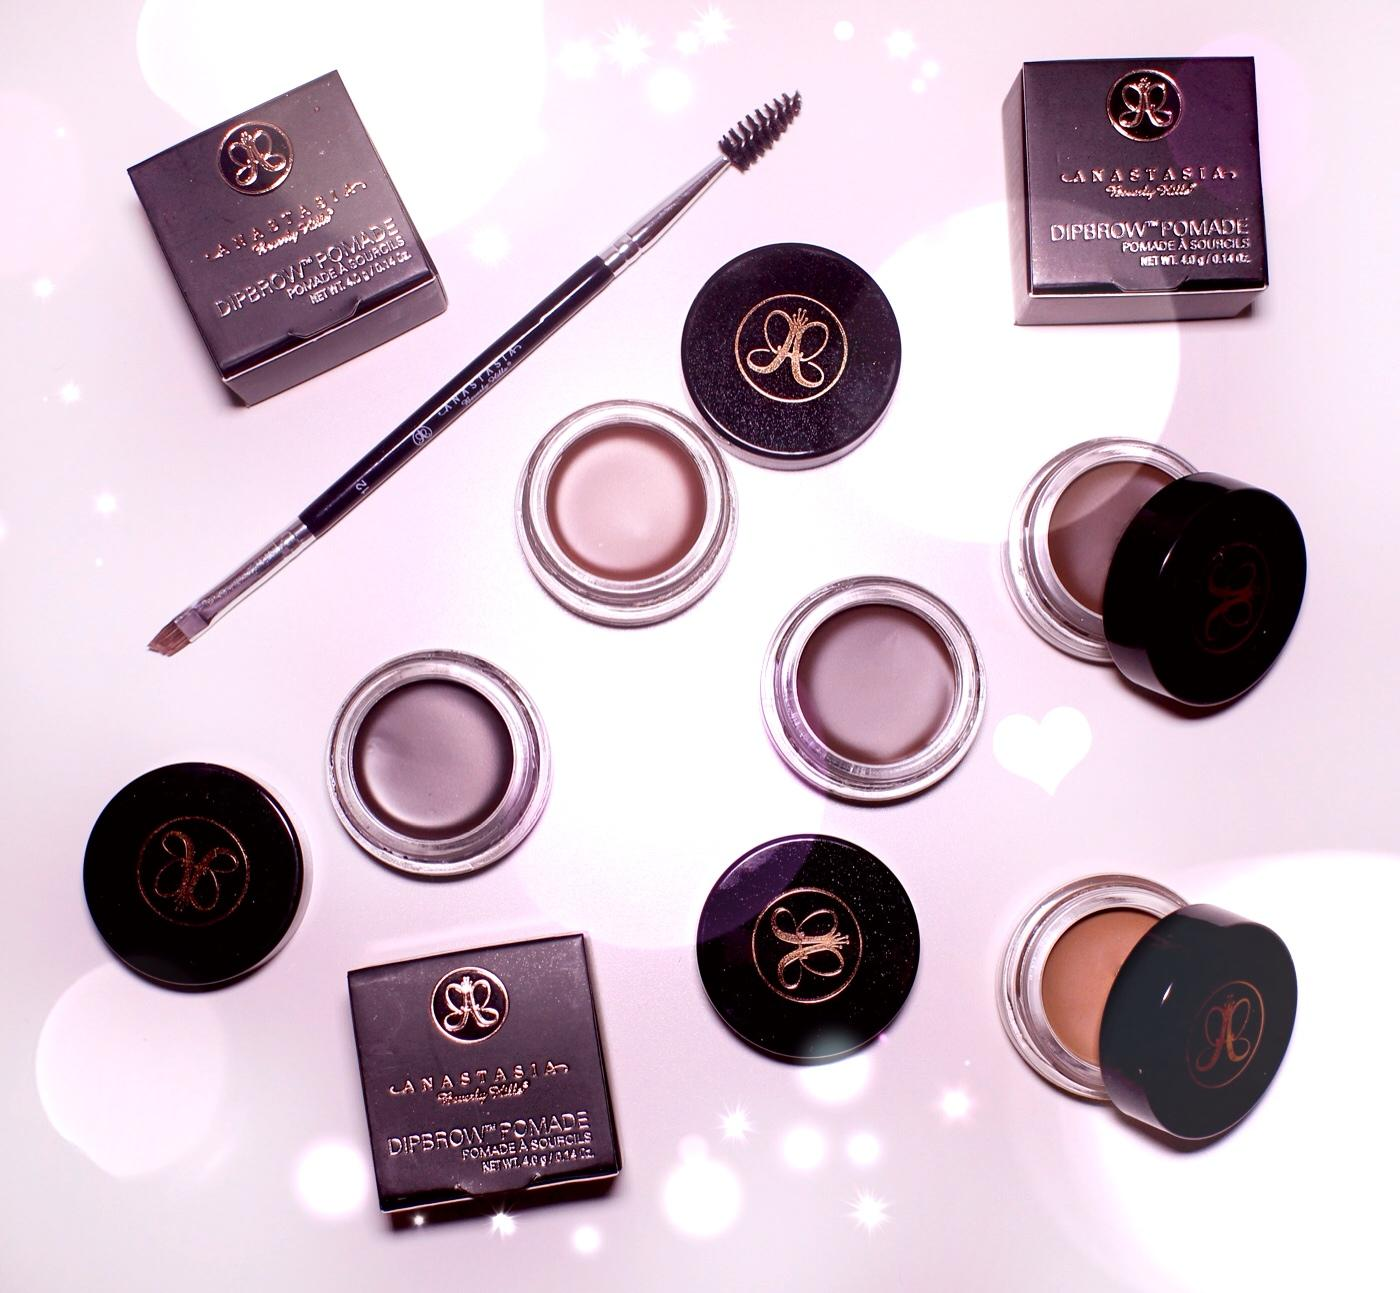 25% Off Anastasia Beverly Hills Products @ Dermstore